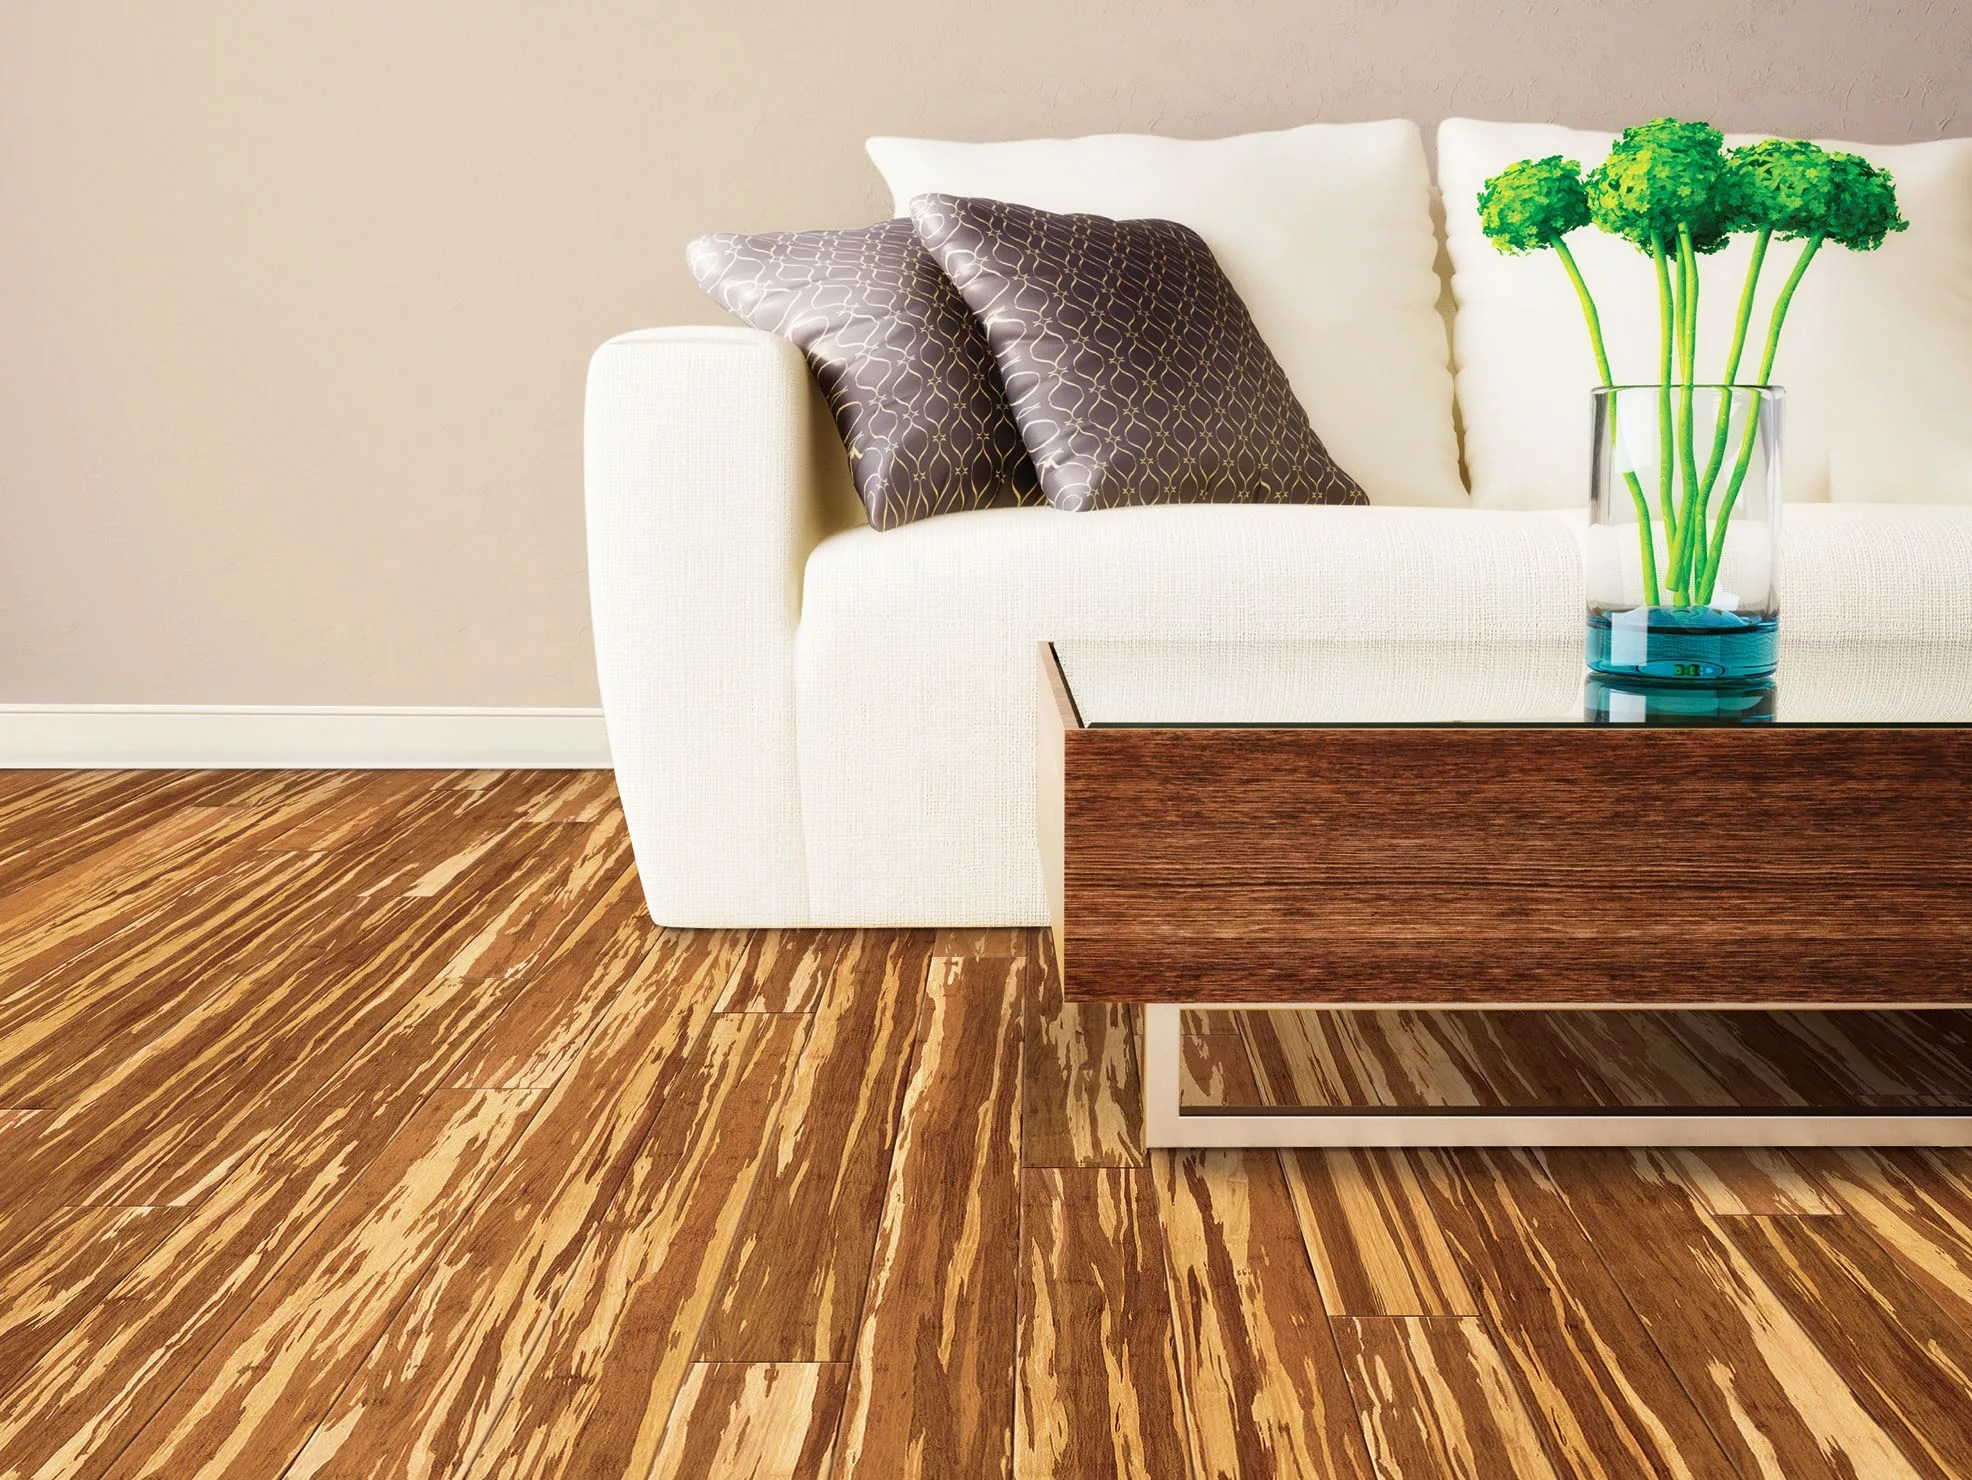 Bamboo Flooring Reviews Advantages And Disadvantages - Best place to buy bamboo flooring